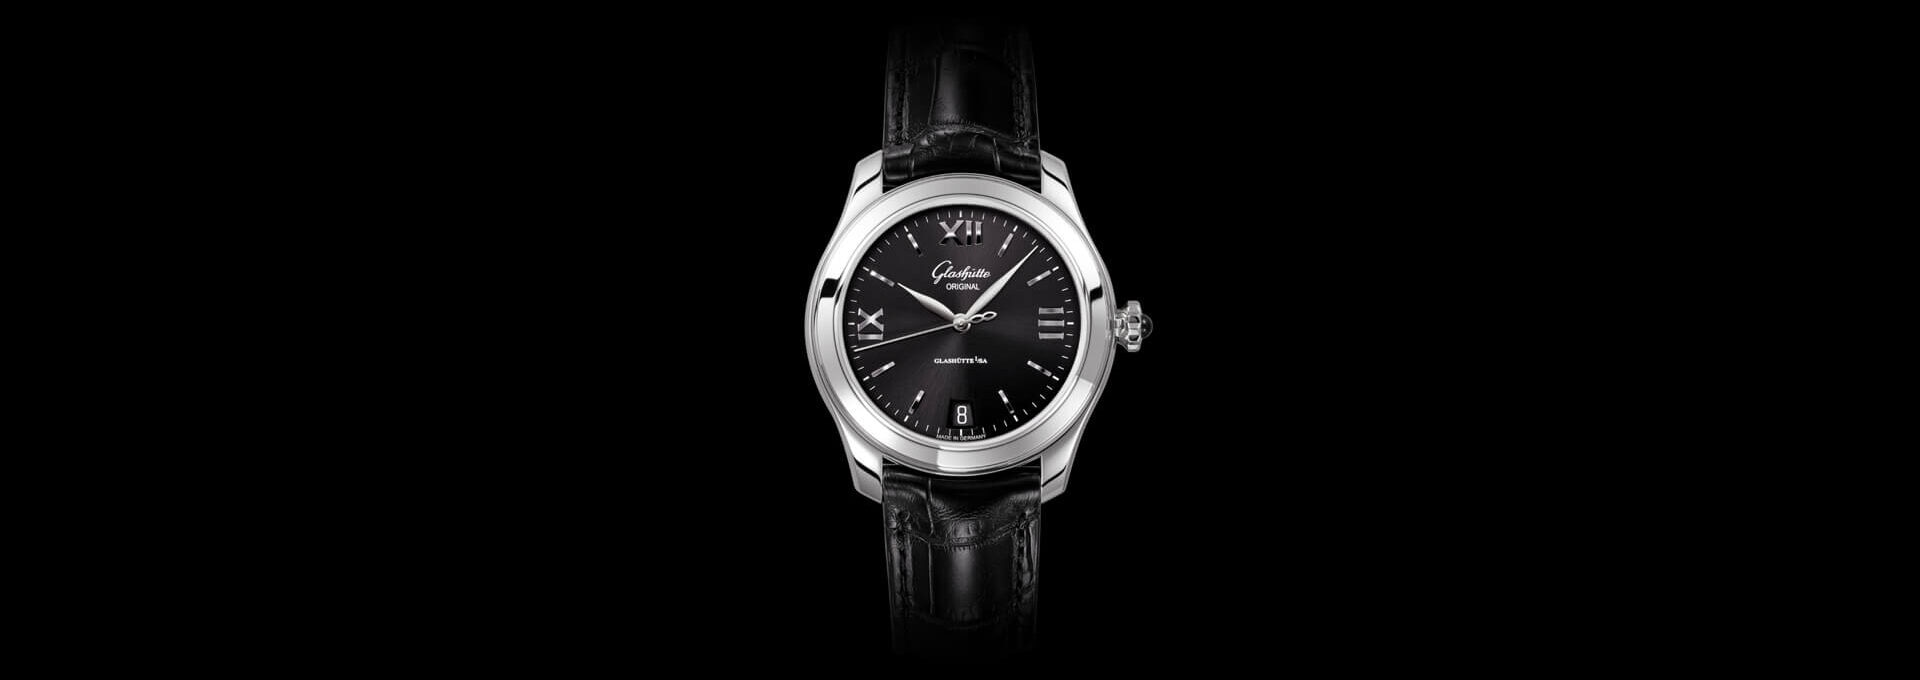 Glashuette_Original-W13922200244-Detail-1